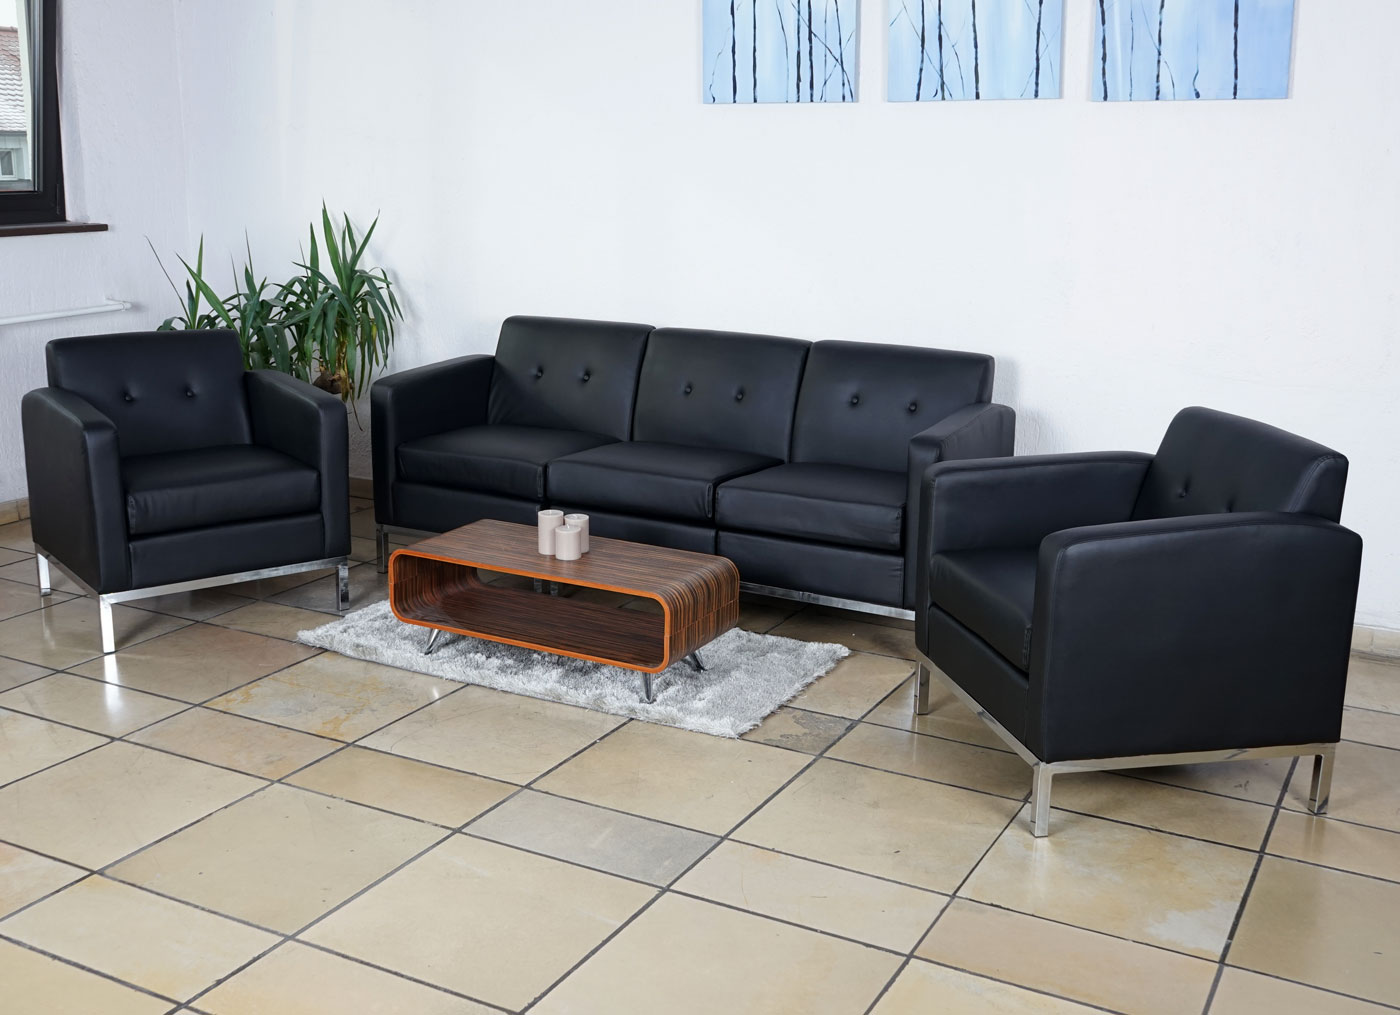 3 1 1 sofagarnitur hwc c19 modular sofa erweiterbar kunstleder ebay. Black Bedroom Furniture Sets. Home Design Ideas